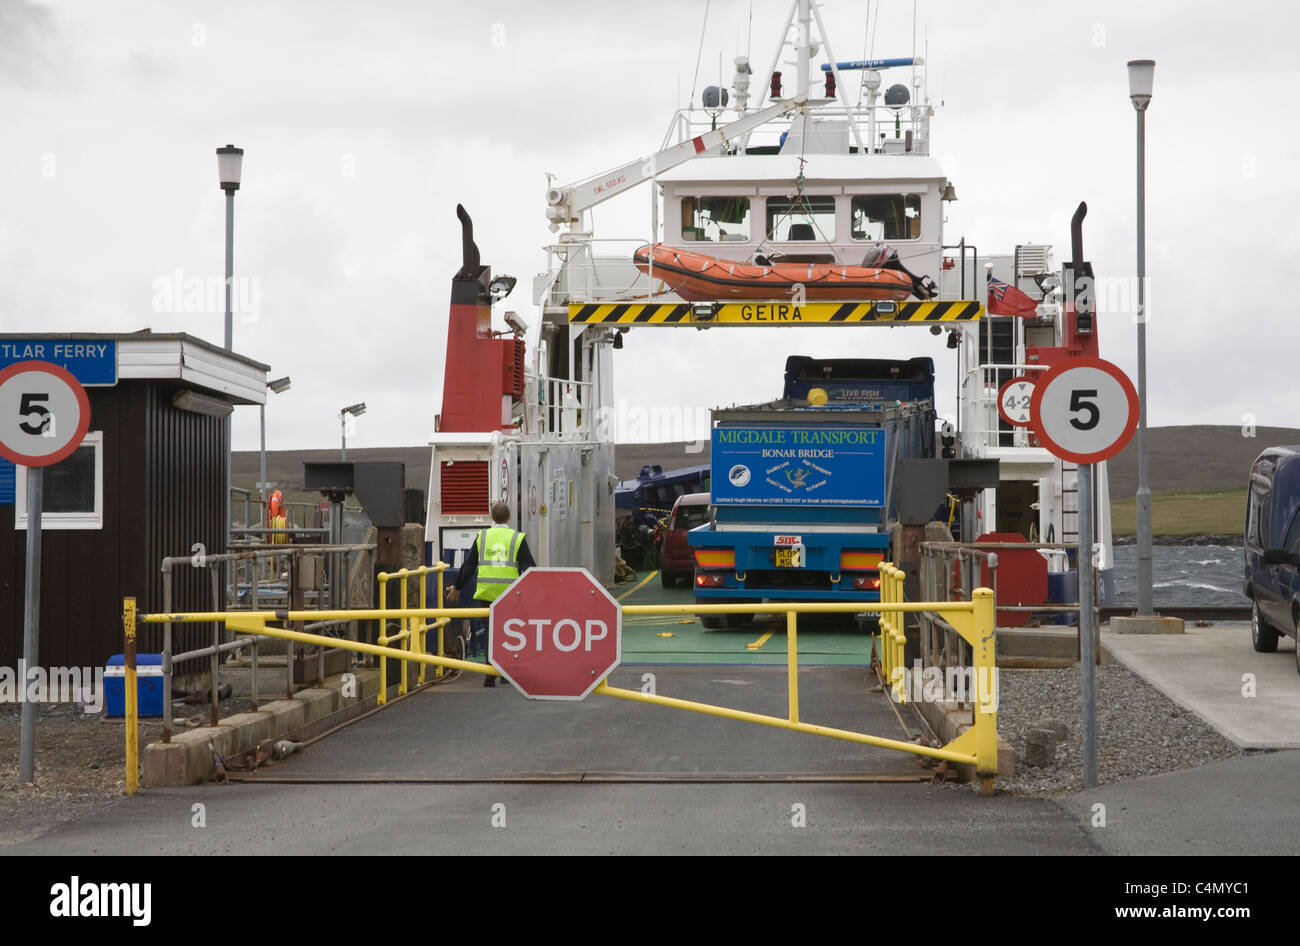 Belmont Ferry Terminal Unst Shetland Isles Scotland Barrier closed as loaded Yell to Fetlar ferry about to depart - Stock Image